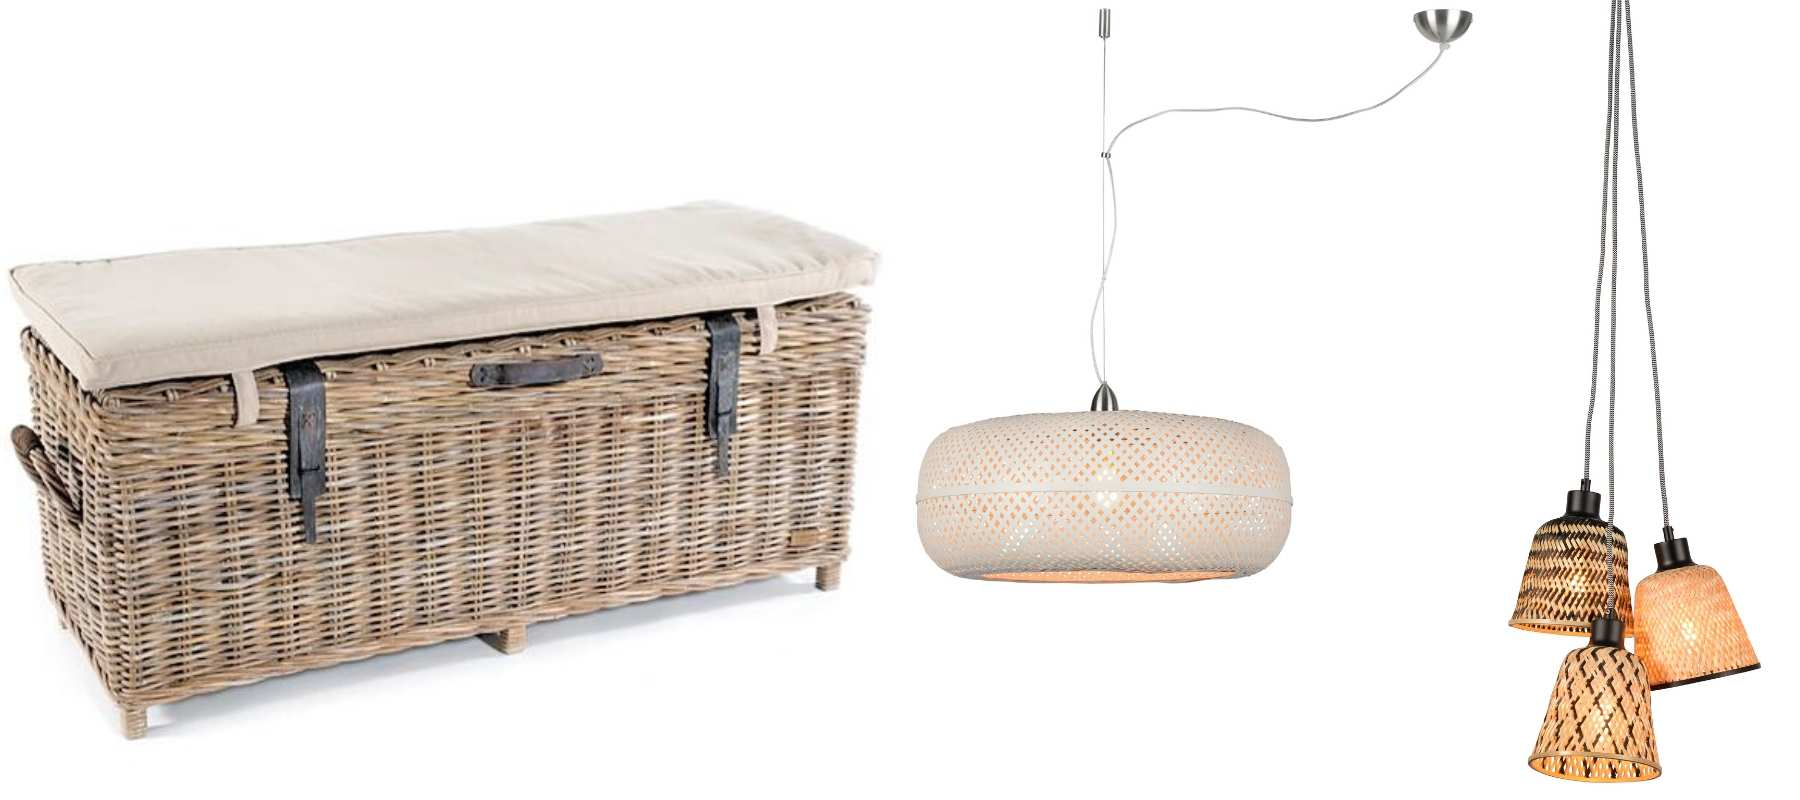 Rattan storage bench with cushion, white rattan pendant light and bamboo hanging lights